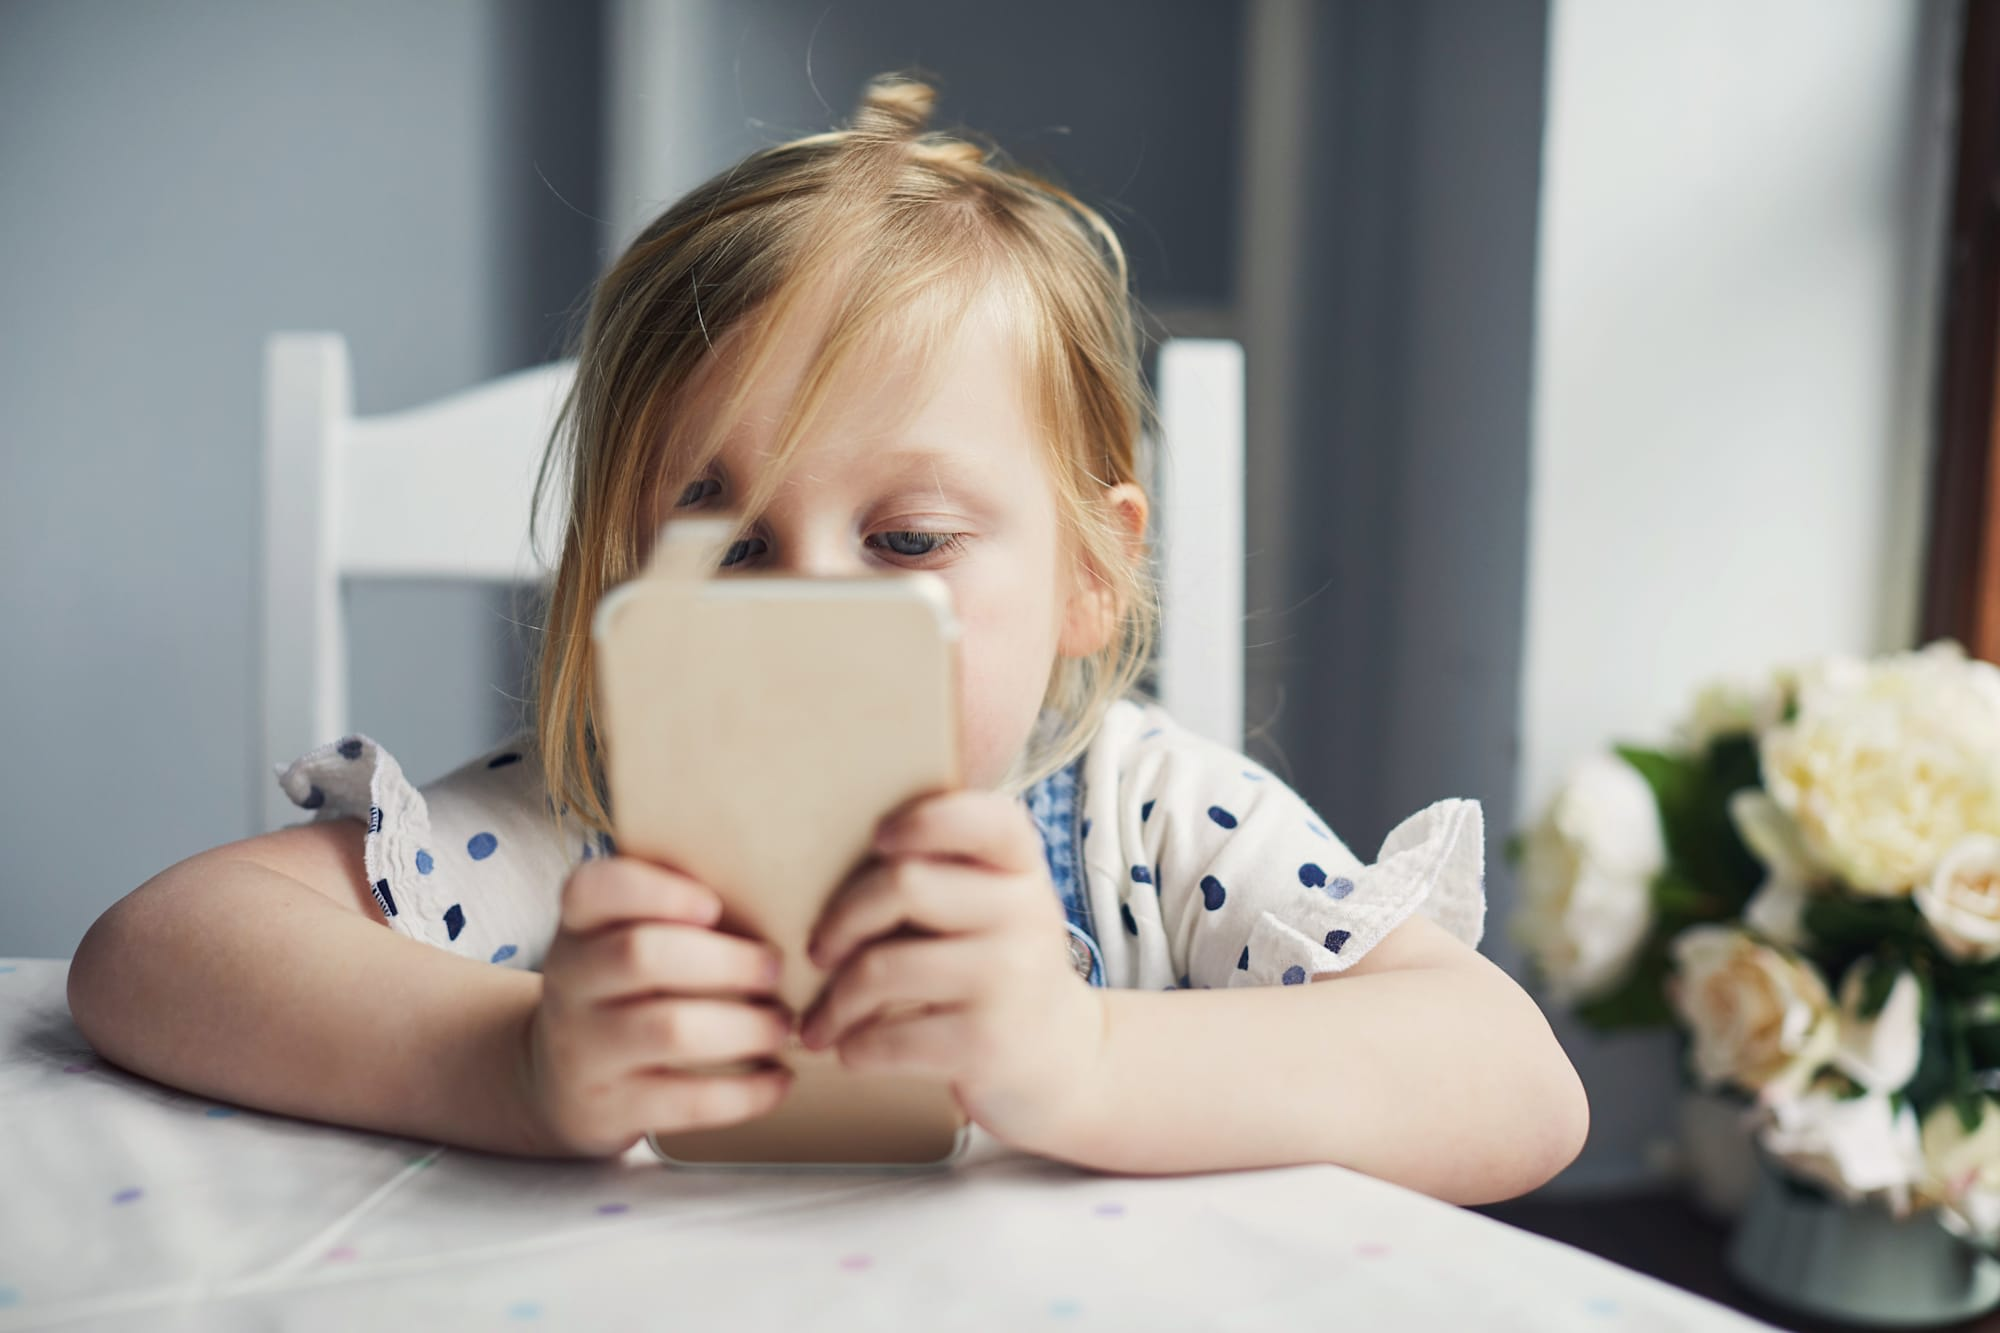 Google's Family Link parental controls now include per-app time limits